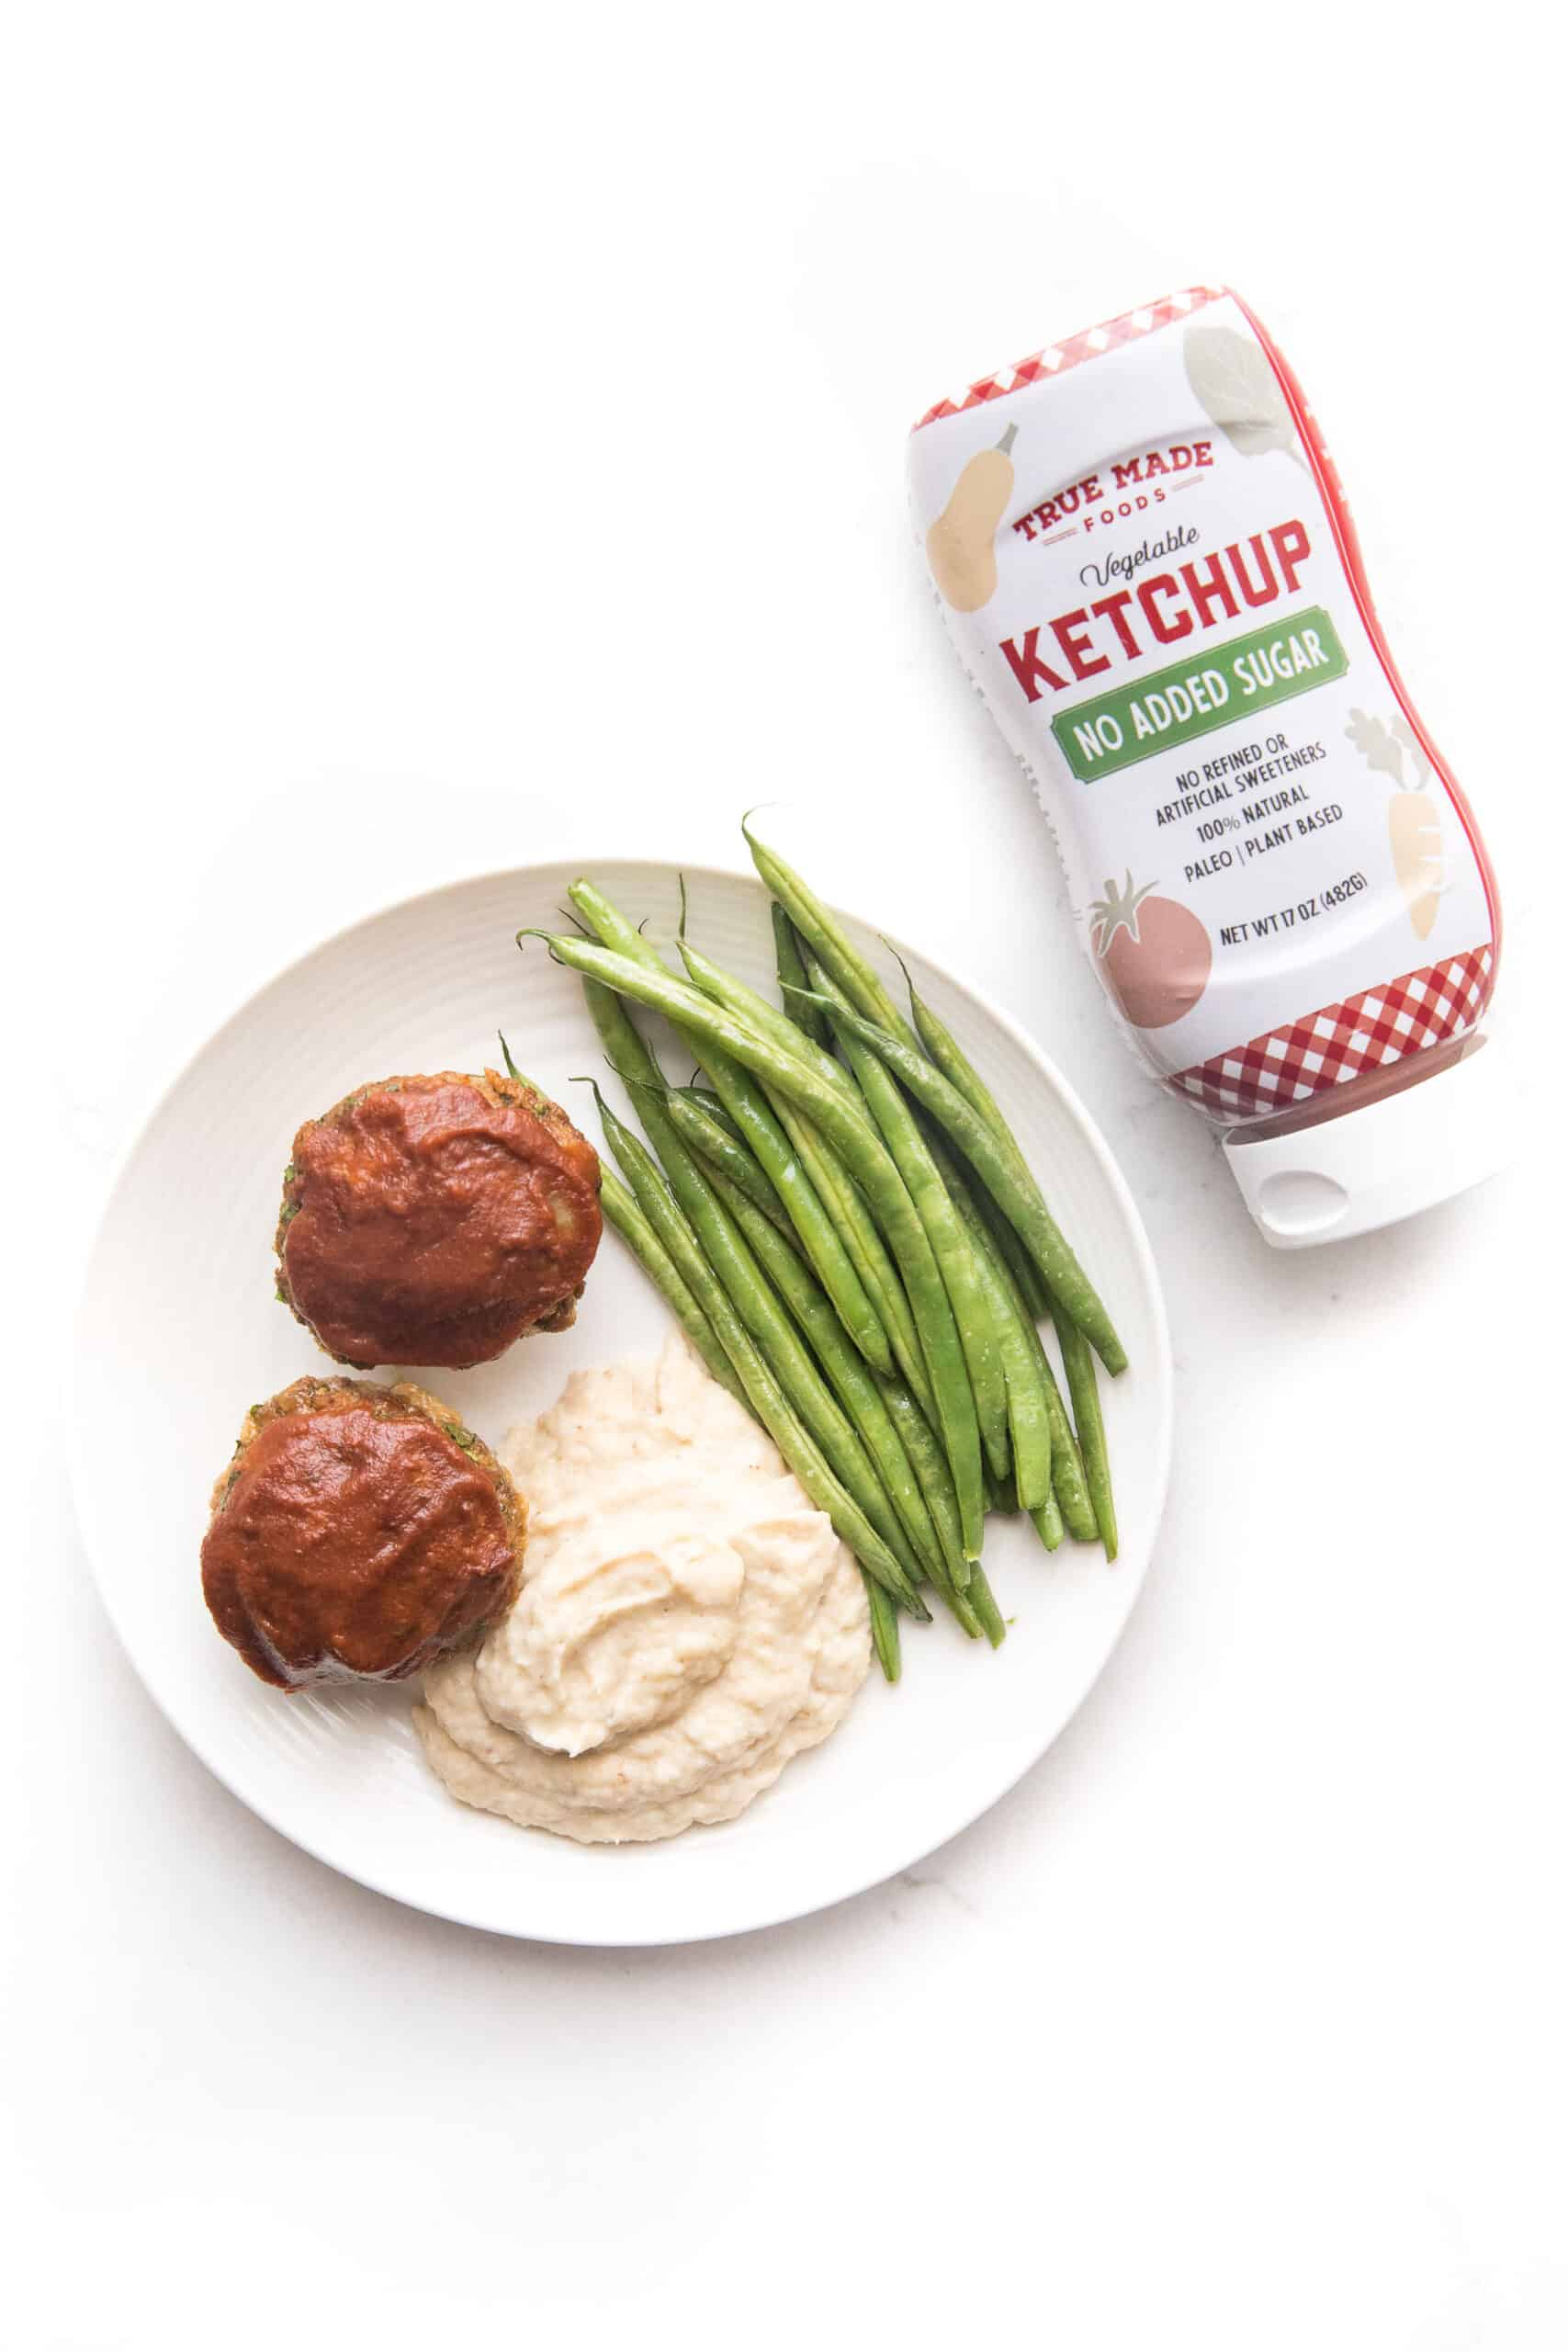 Mini meatloaf muffins topped with ketchup with green beans + mashed cauliflower + green beans on a white plate